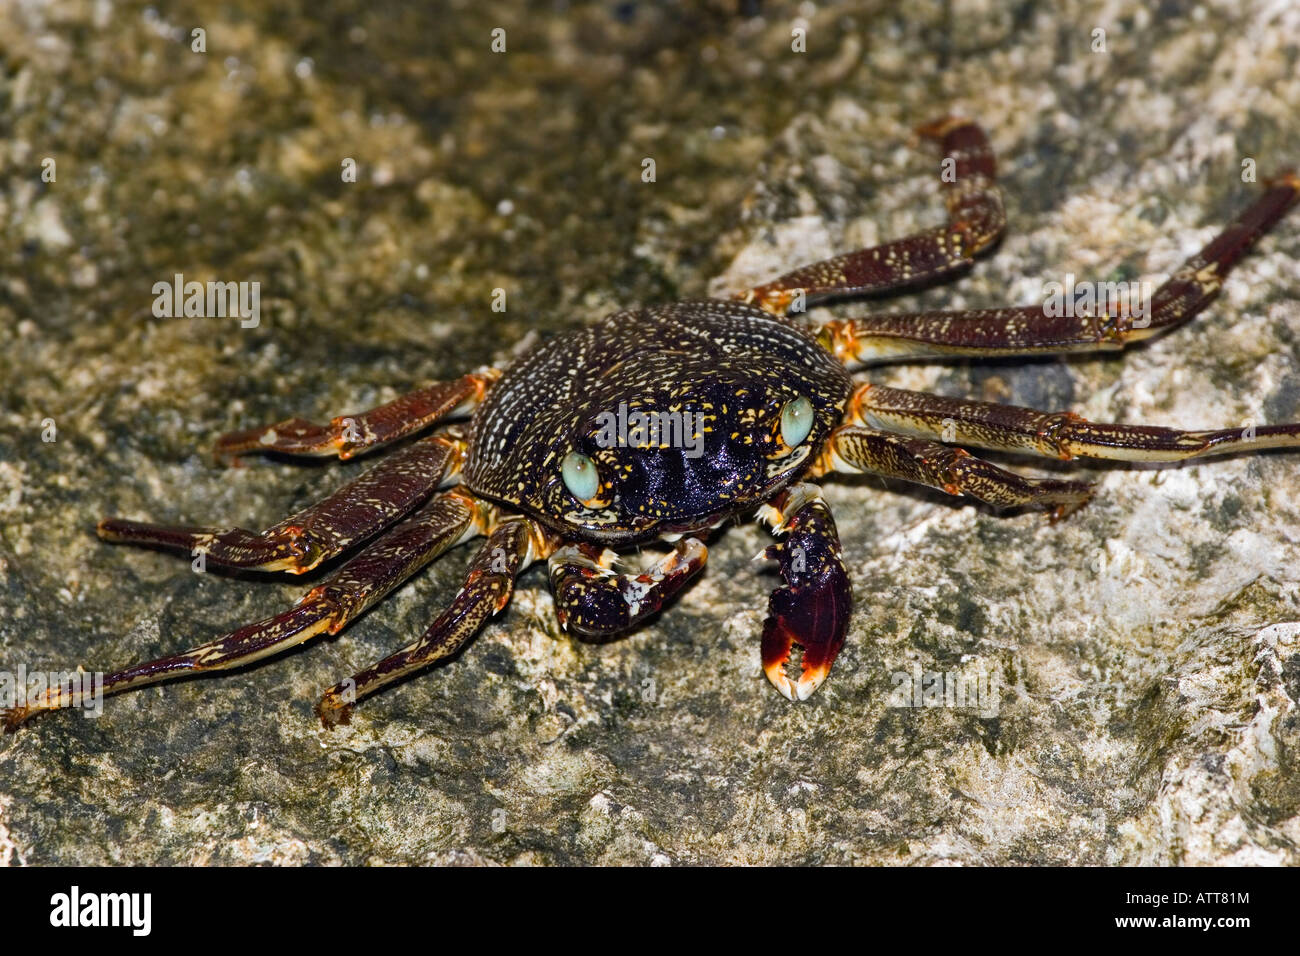 Thin shelled rock or grapsid crabs, Grapsus tenuicrustatus, live on rocky shores and in the nearby shallow water, - Stock Image